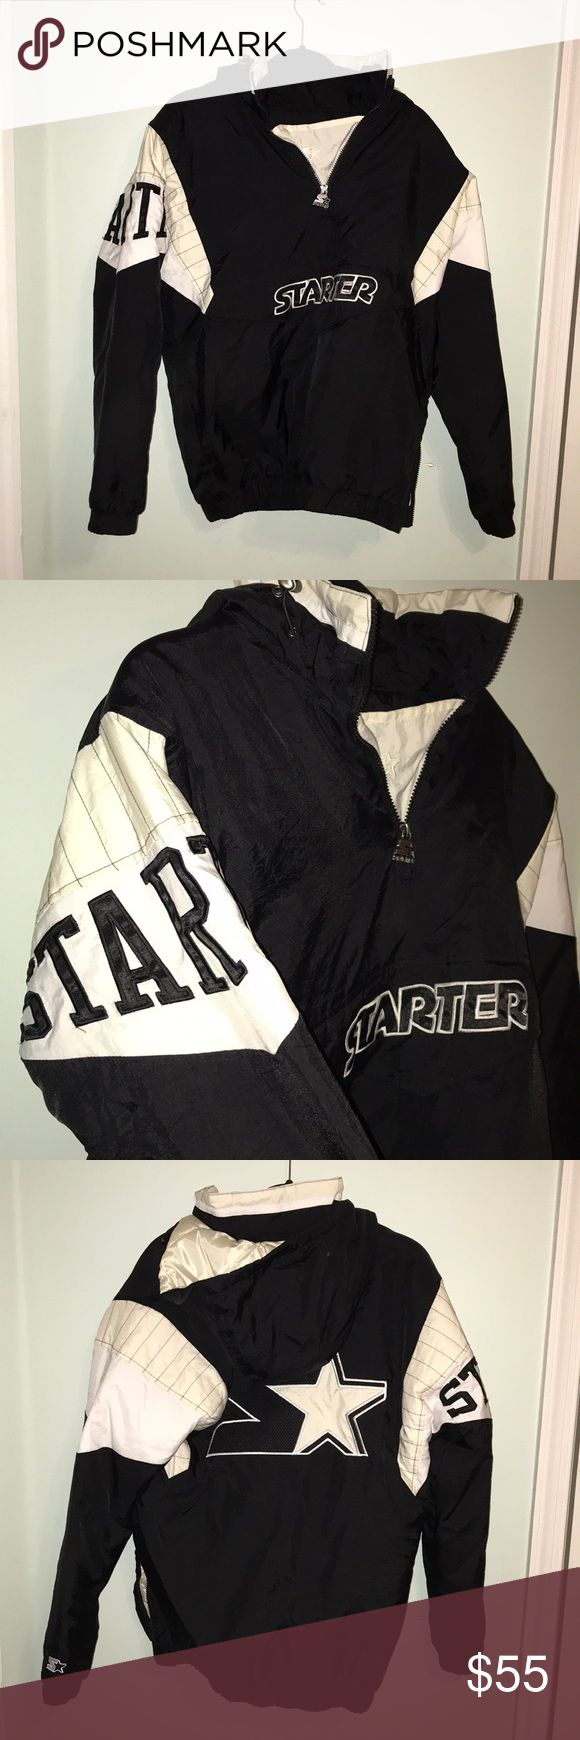 Urban Outfitters Starter Jacket WORN ONCE. Size Medium. Urban Outfitters. Light Jacket. Awesome front pocket. Excellent condition. Urban Outfitters Jackets & Coats